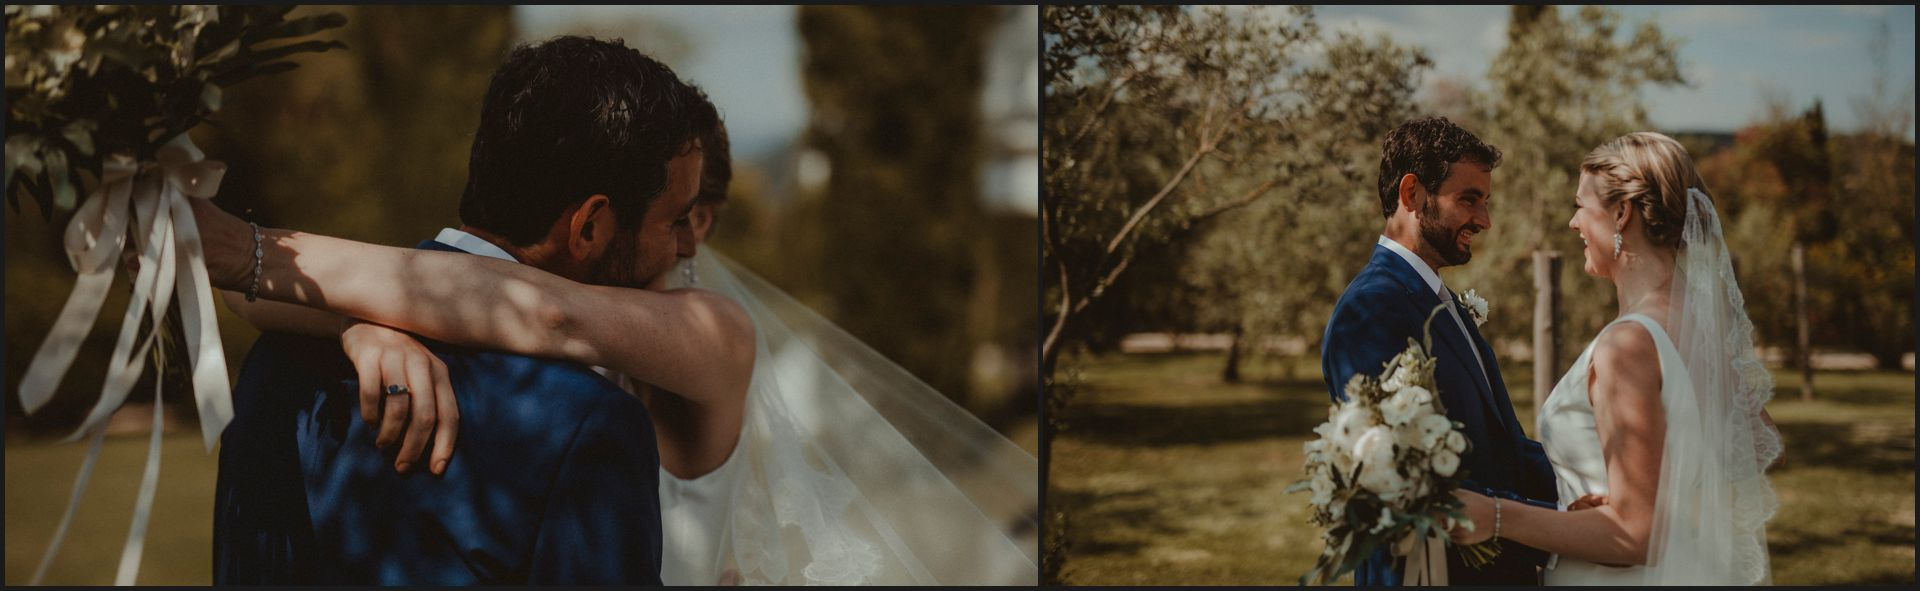 tenuta di canonica, umbria, wedding, first look, bride, groom, hug